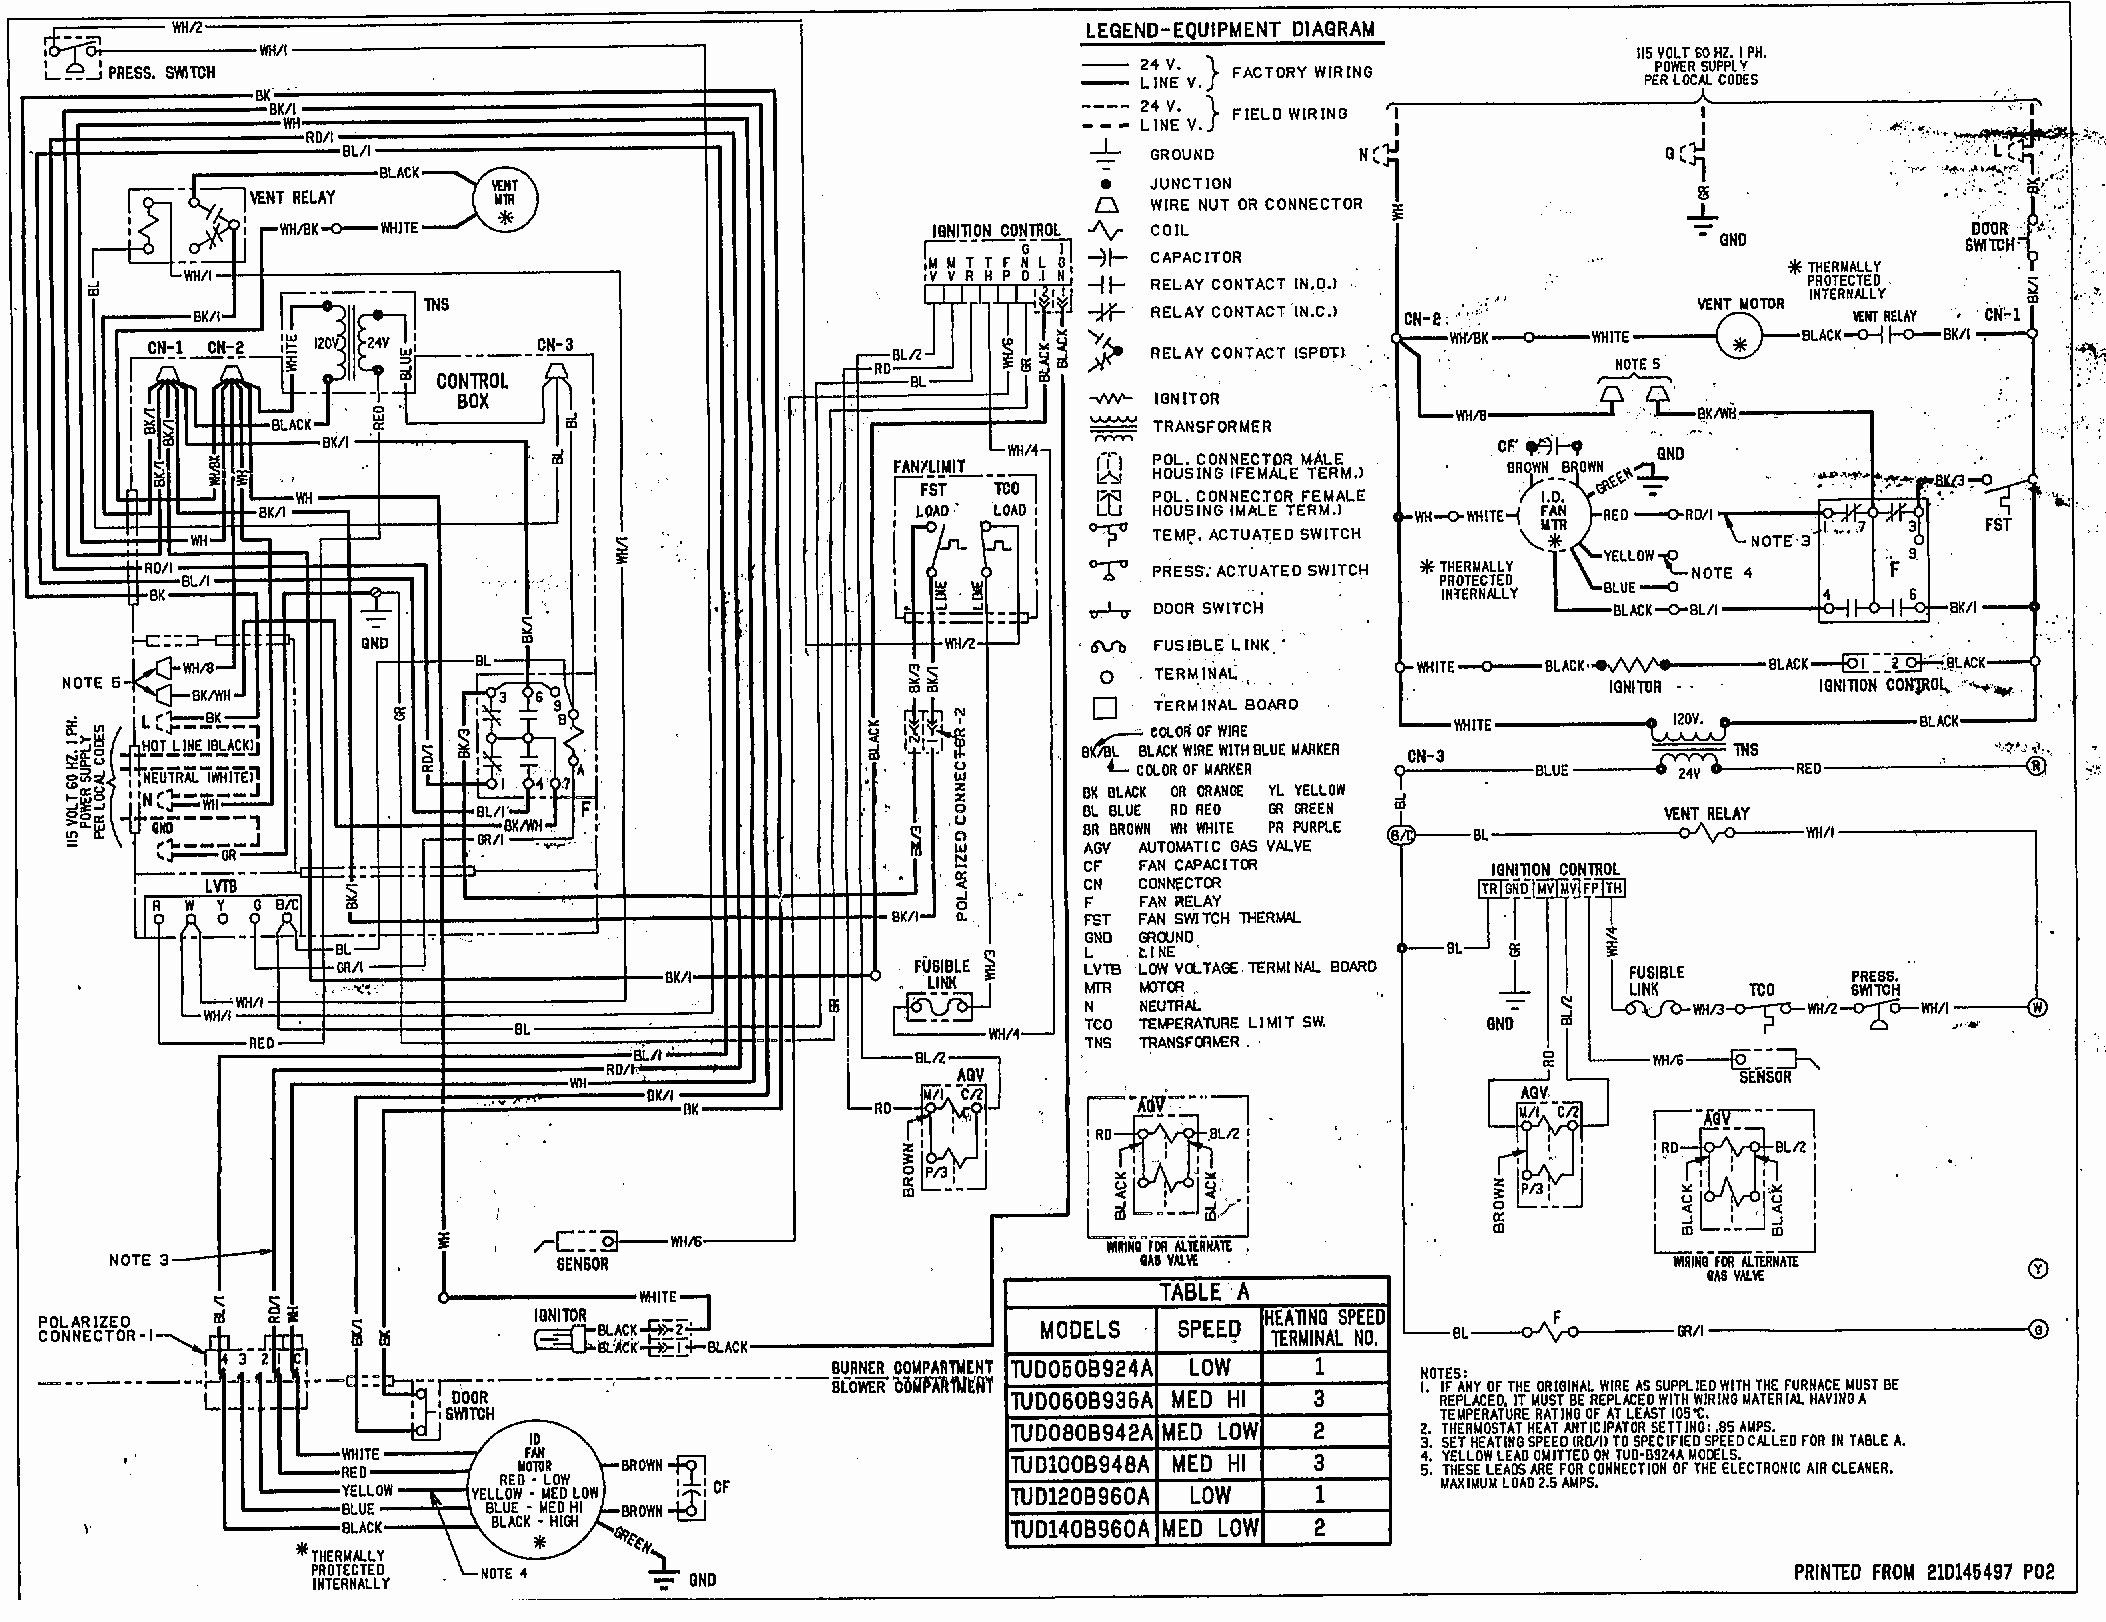 Lennox Electric Furnace Wiring Diagram In 2020 Thermostat Wiring Electric Furnace Diagram